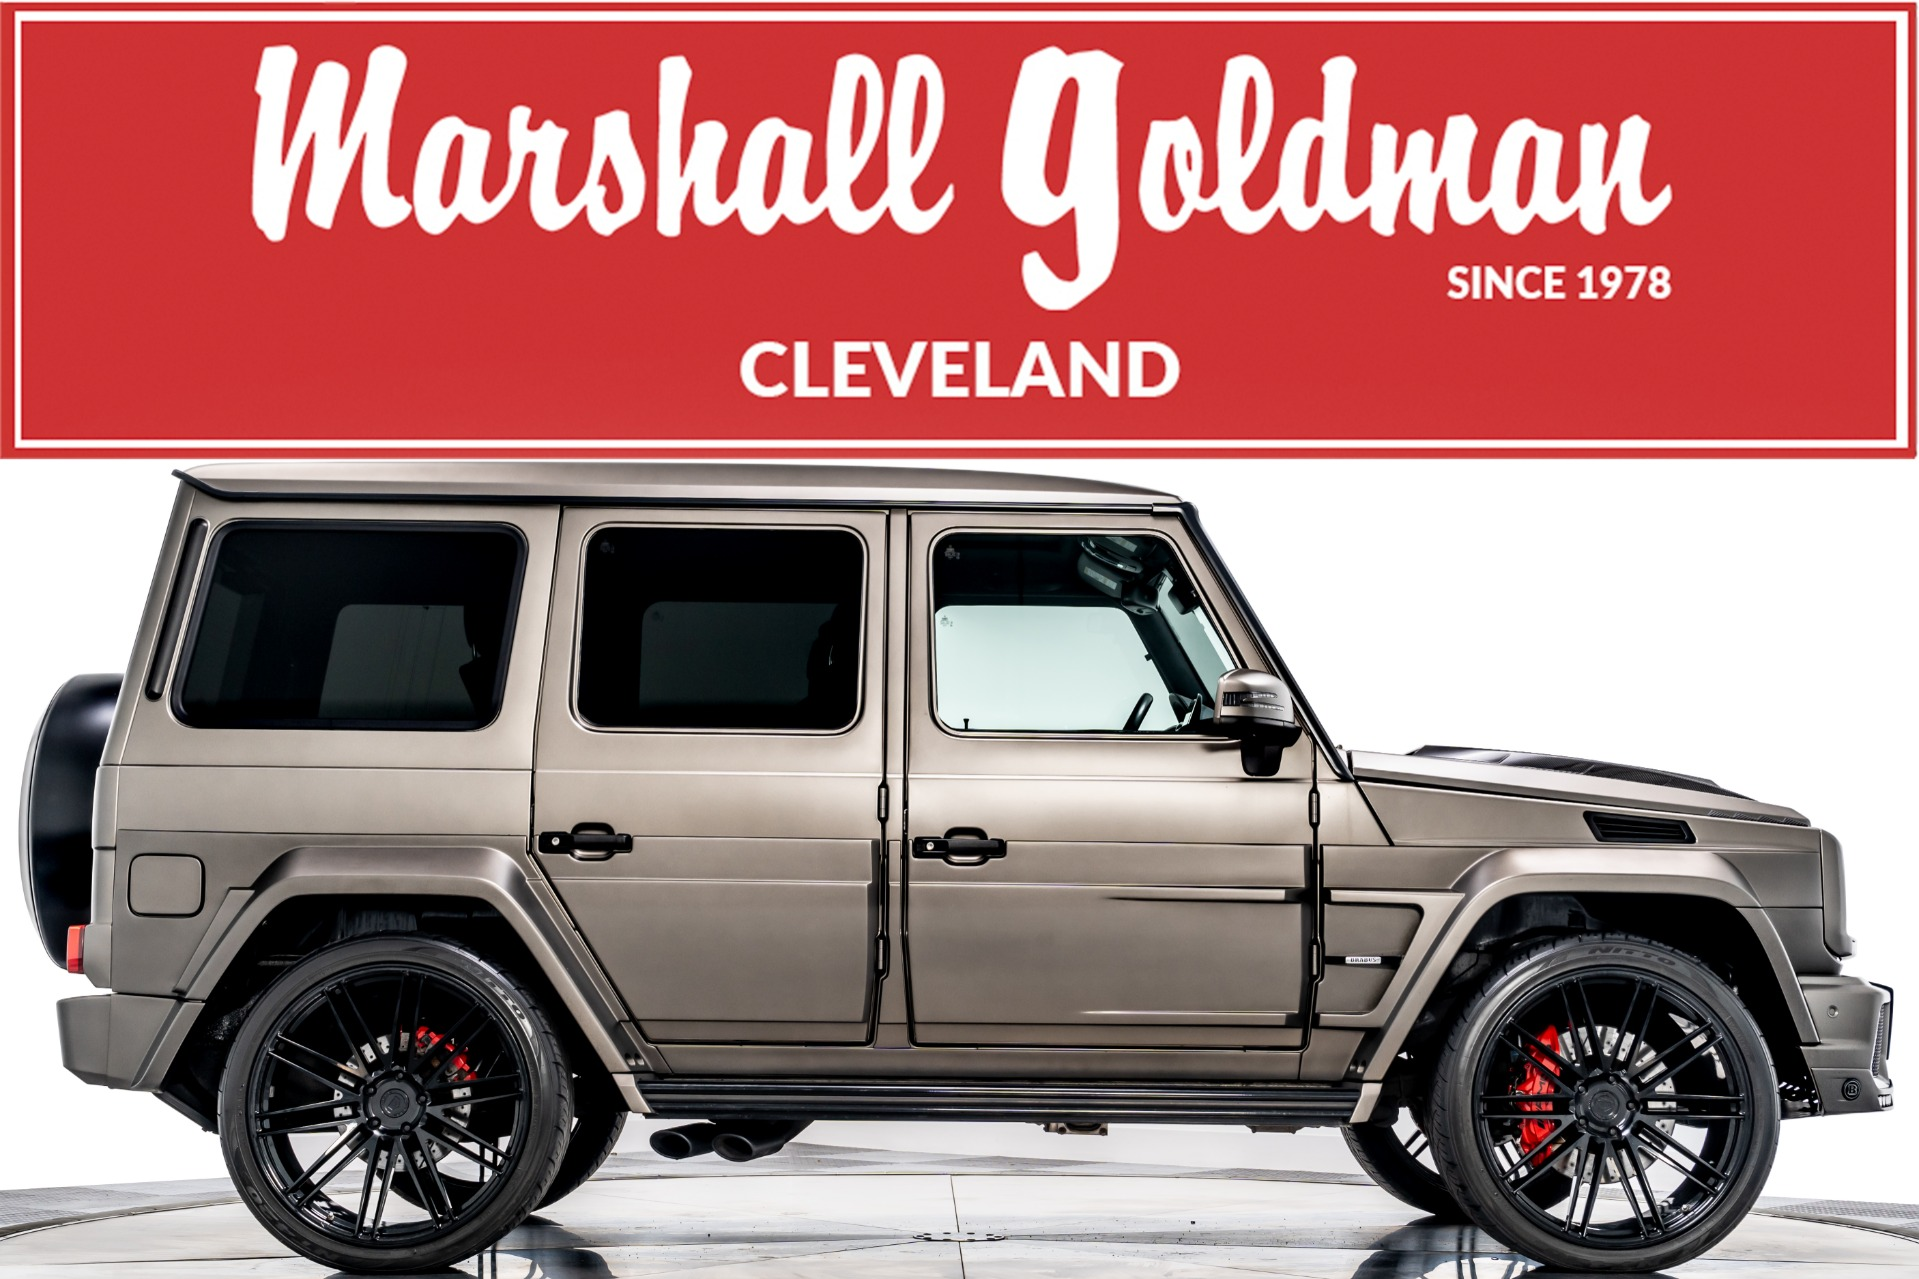 Used 2017 Mercedes Benz G65 Amg Brabus For Sale Sold Marshall Goldman Cleveland Stock W20965